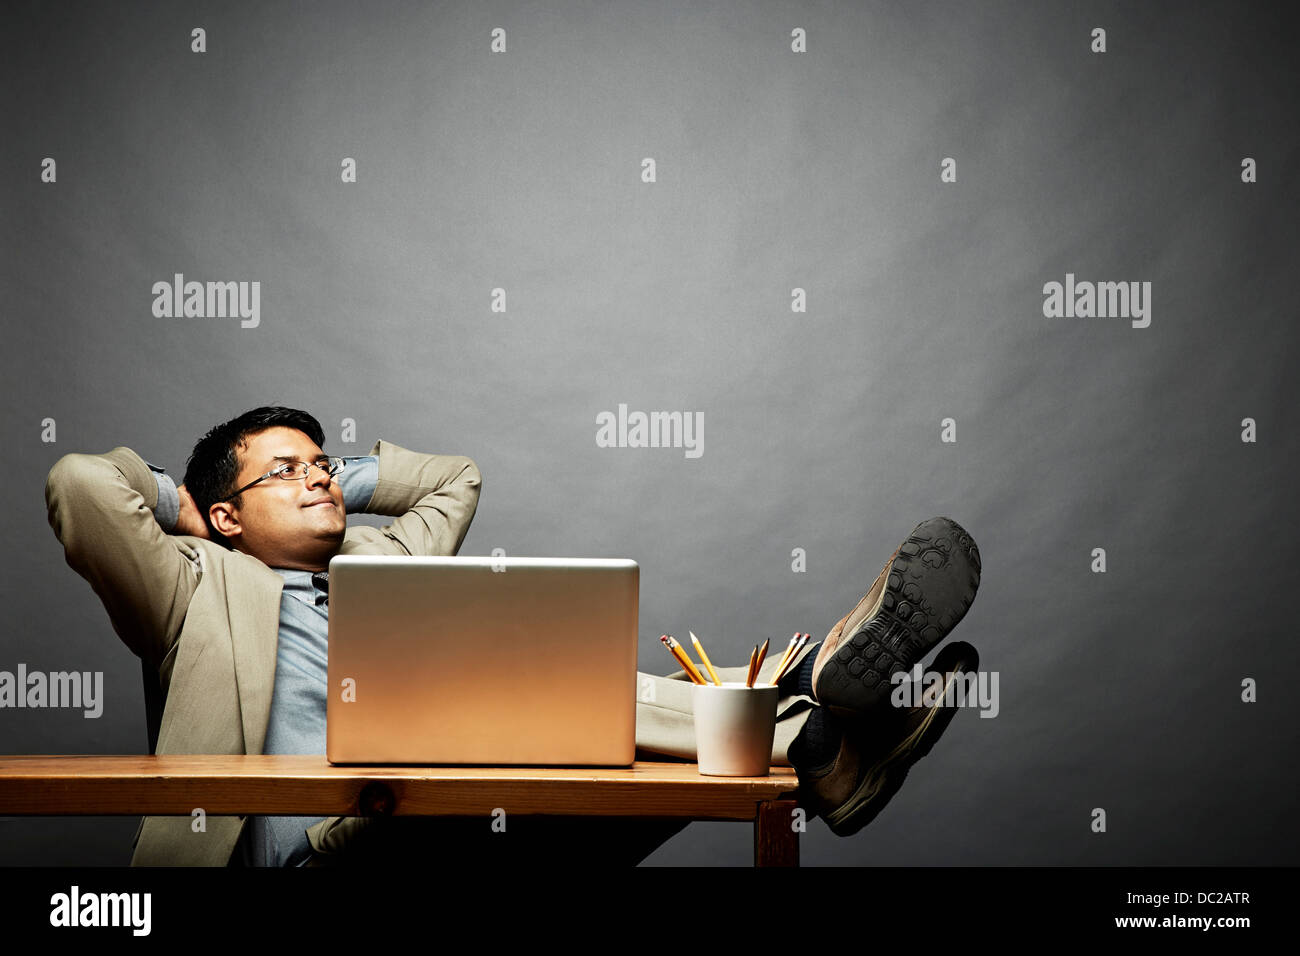 Man relaxing with feet up on table - Stock Image